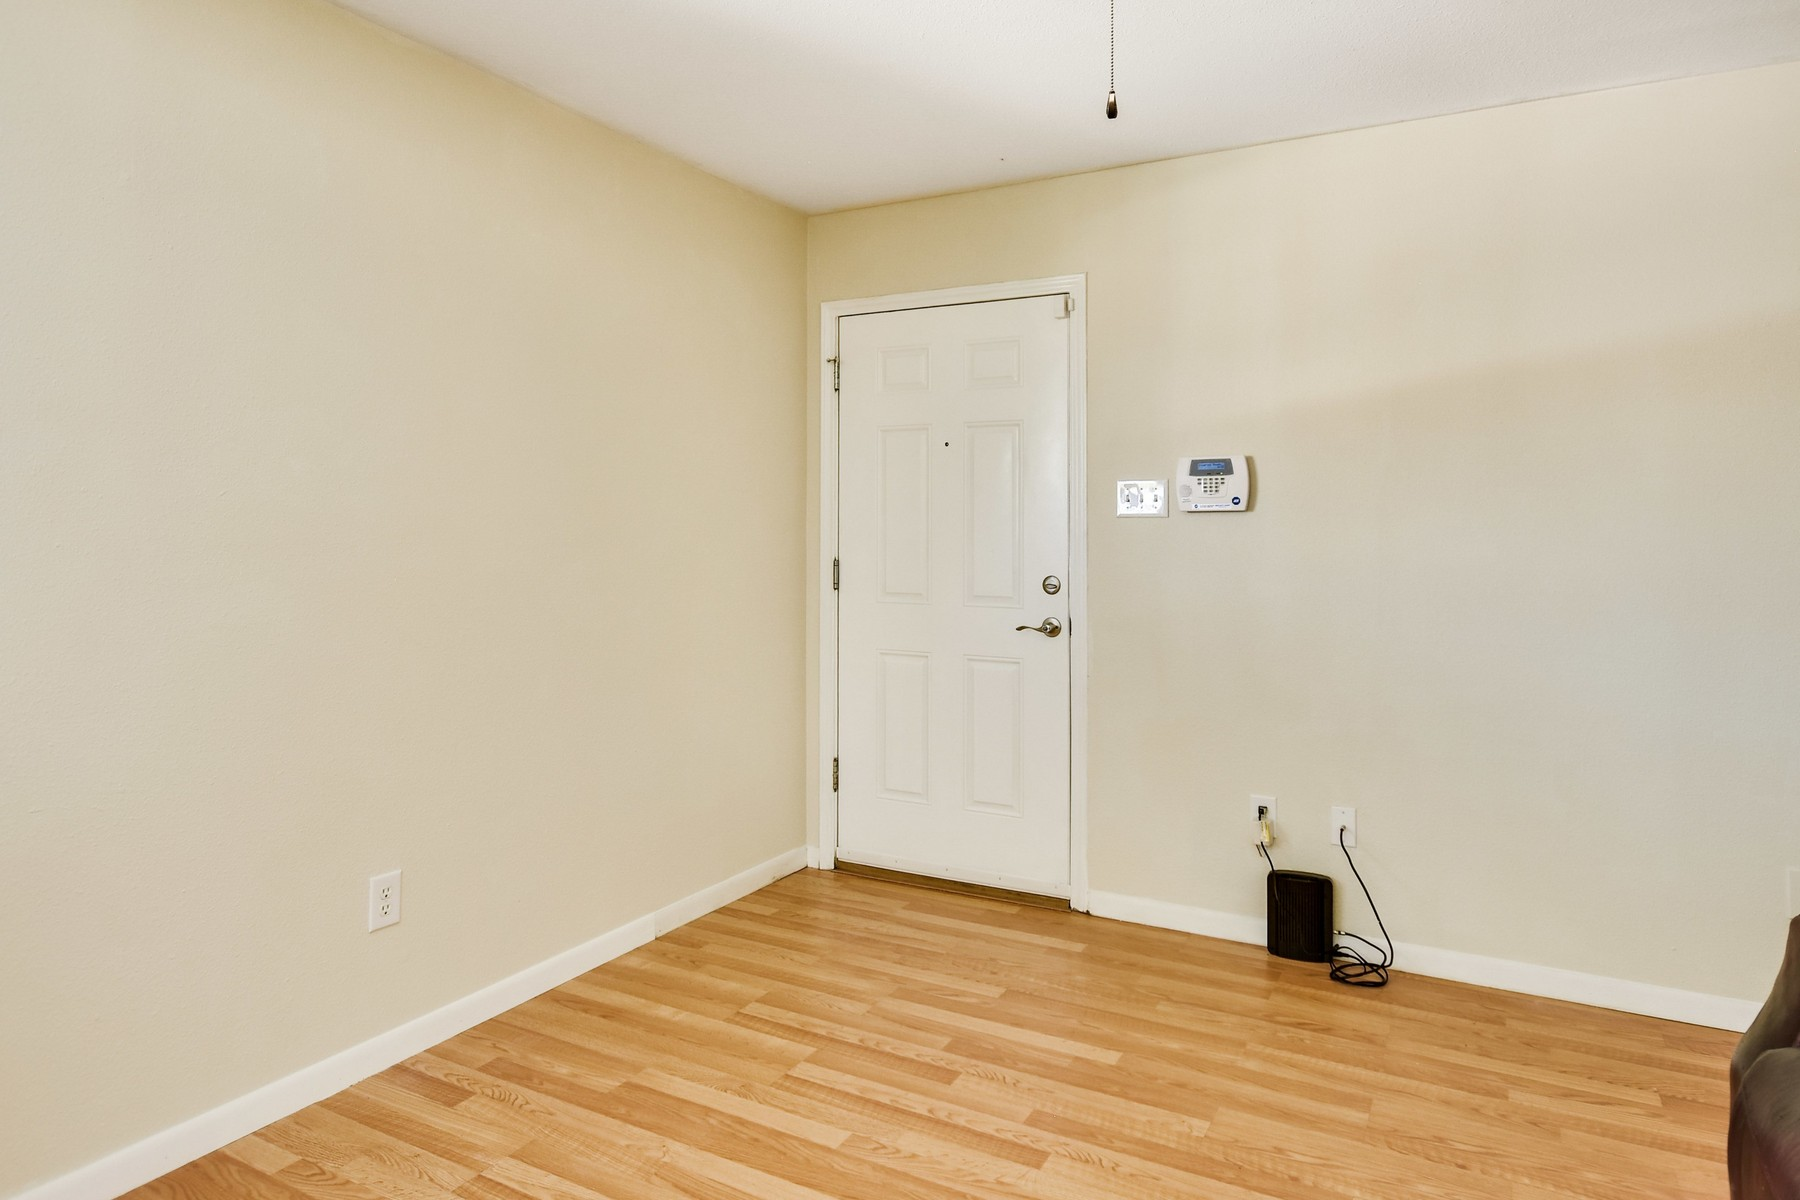 Additional photo for property listing at Amazing Condo in the Heart of North Shoal Creek 2450 Ashdale Dr 215 Austin, Texas 78757 Estados Unidos